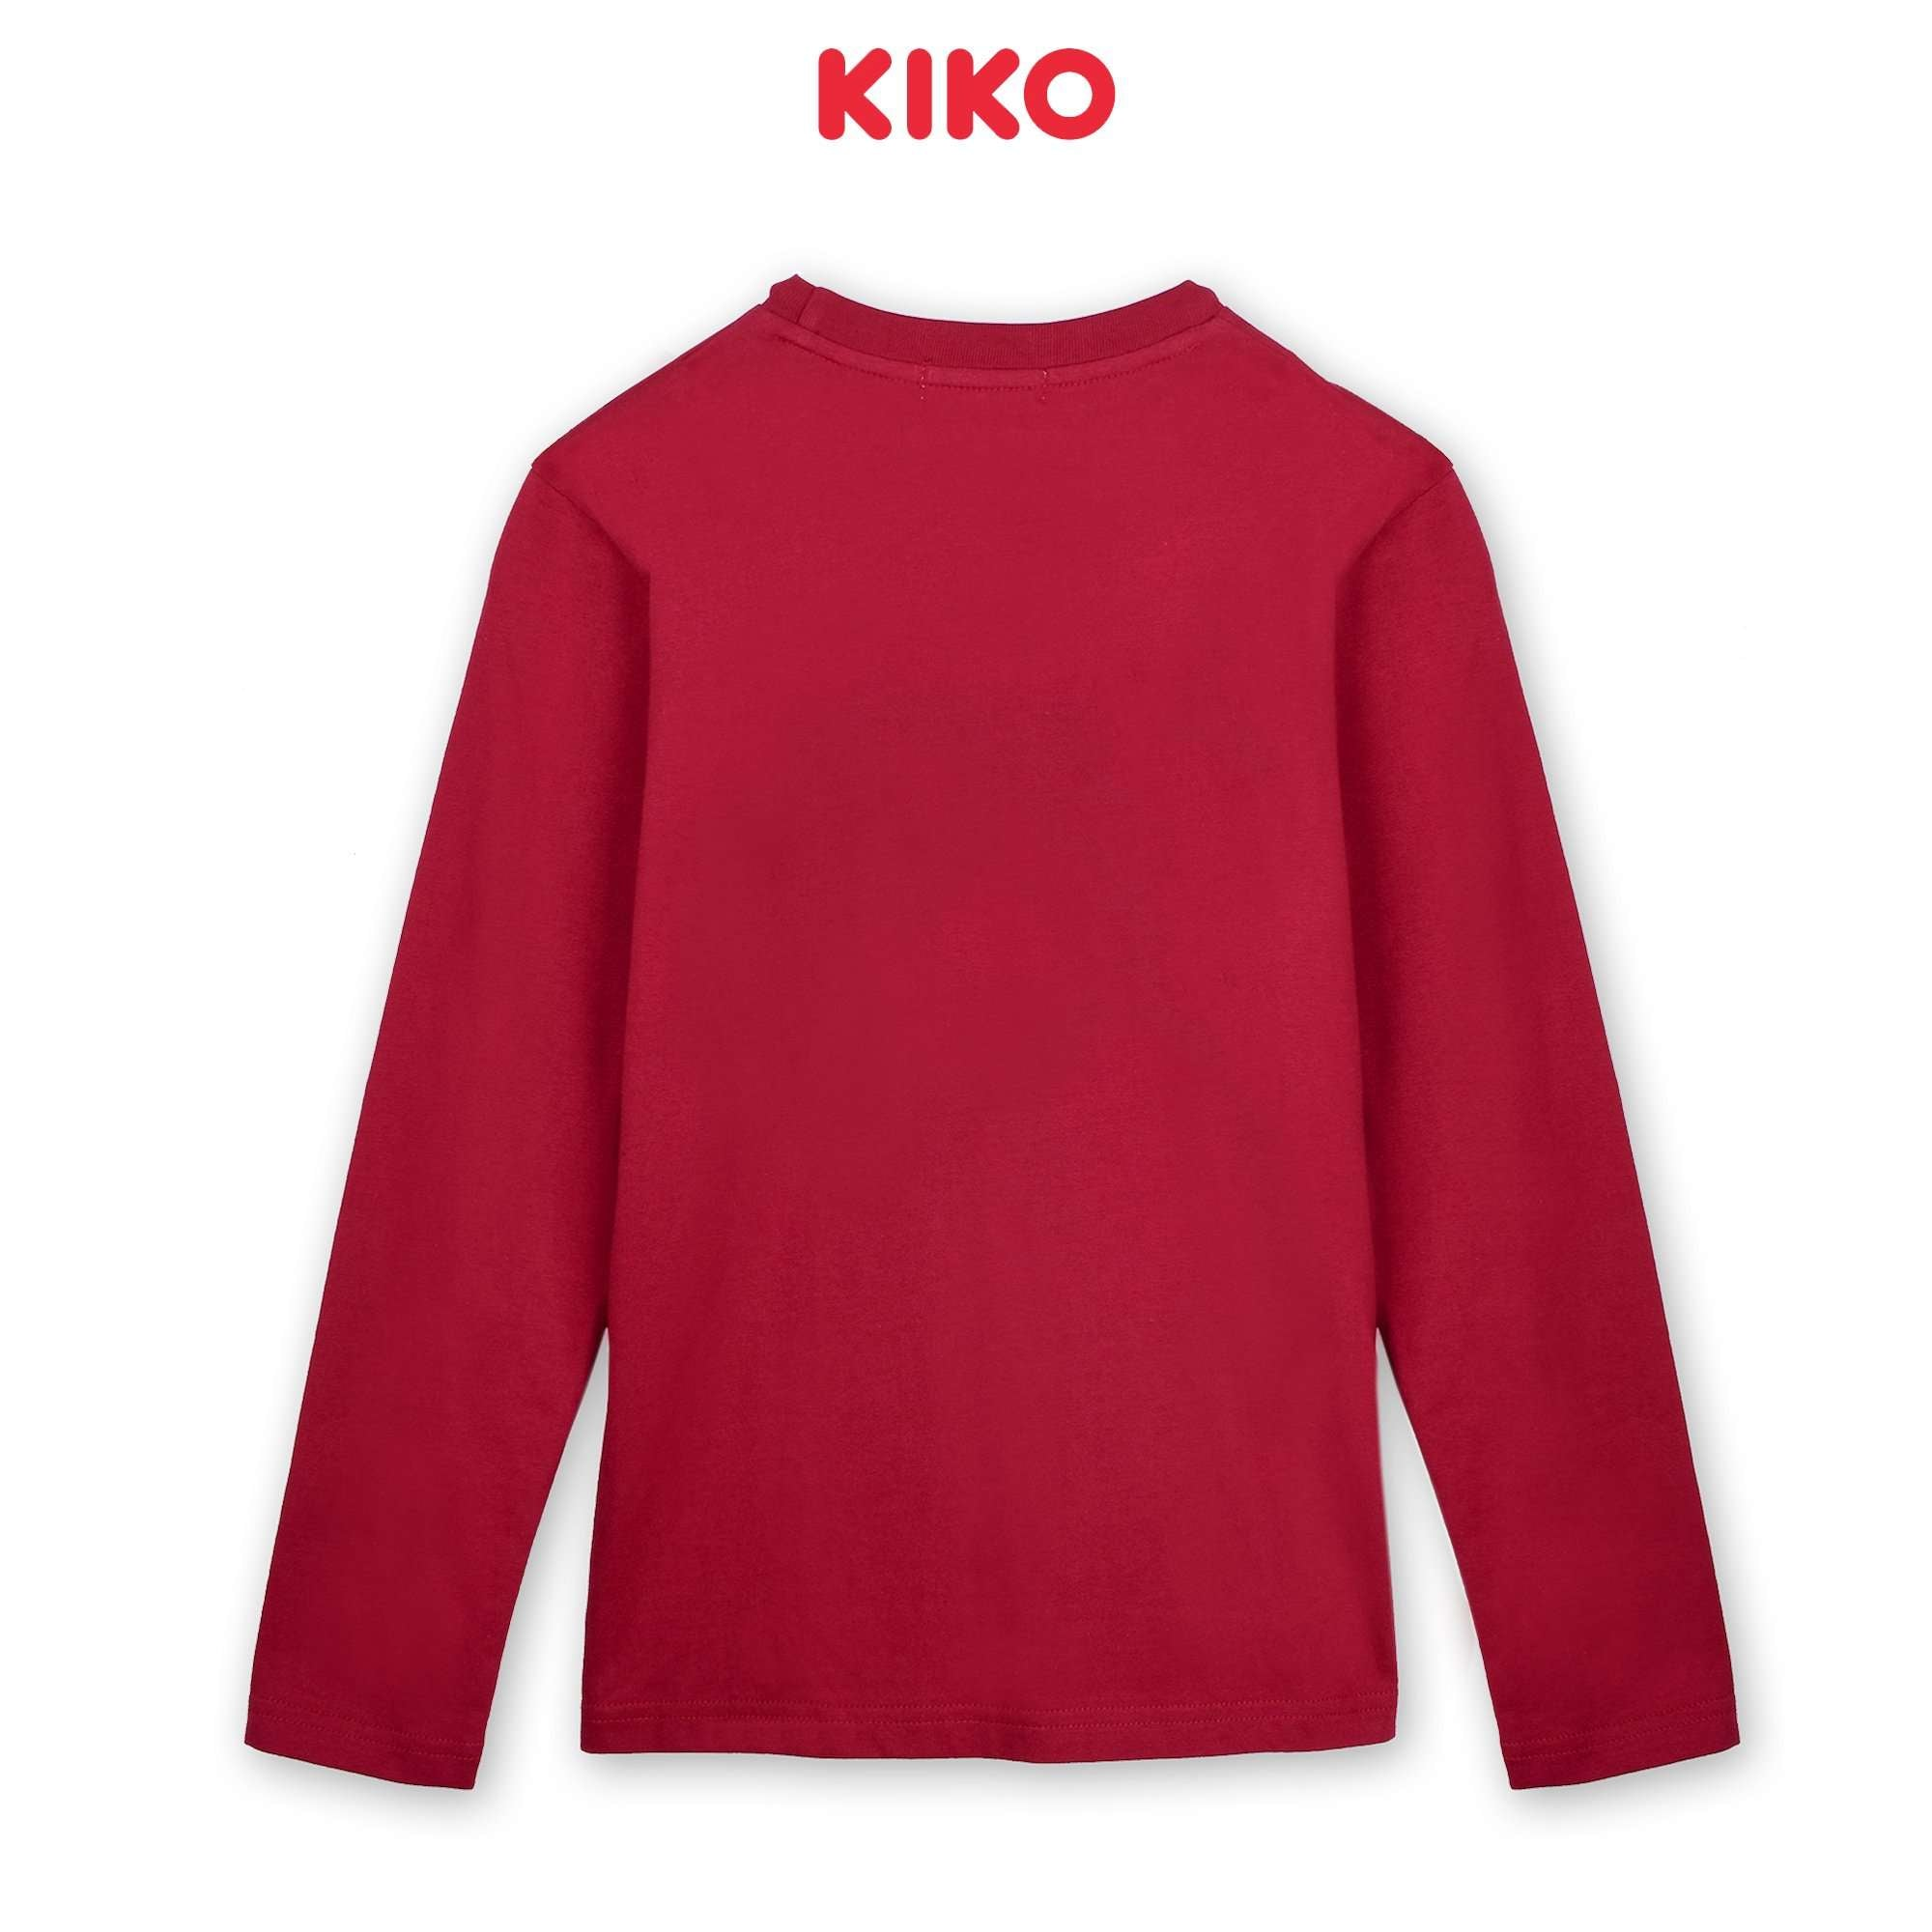 KIKO Boy Long Sleeve Tee - Maroon K923103-1322-R8 : Buy KIKO online at CMG.MY